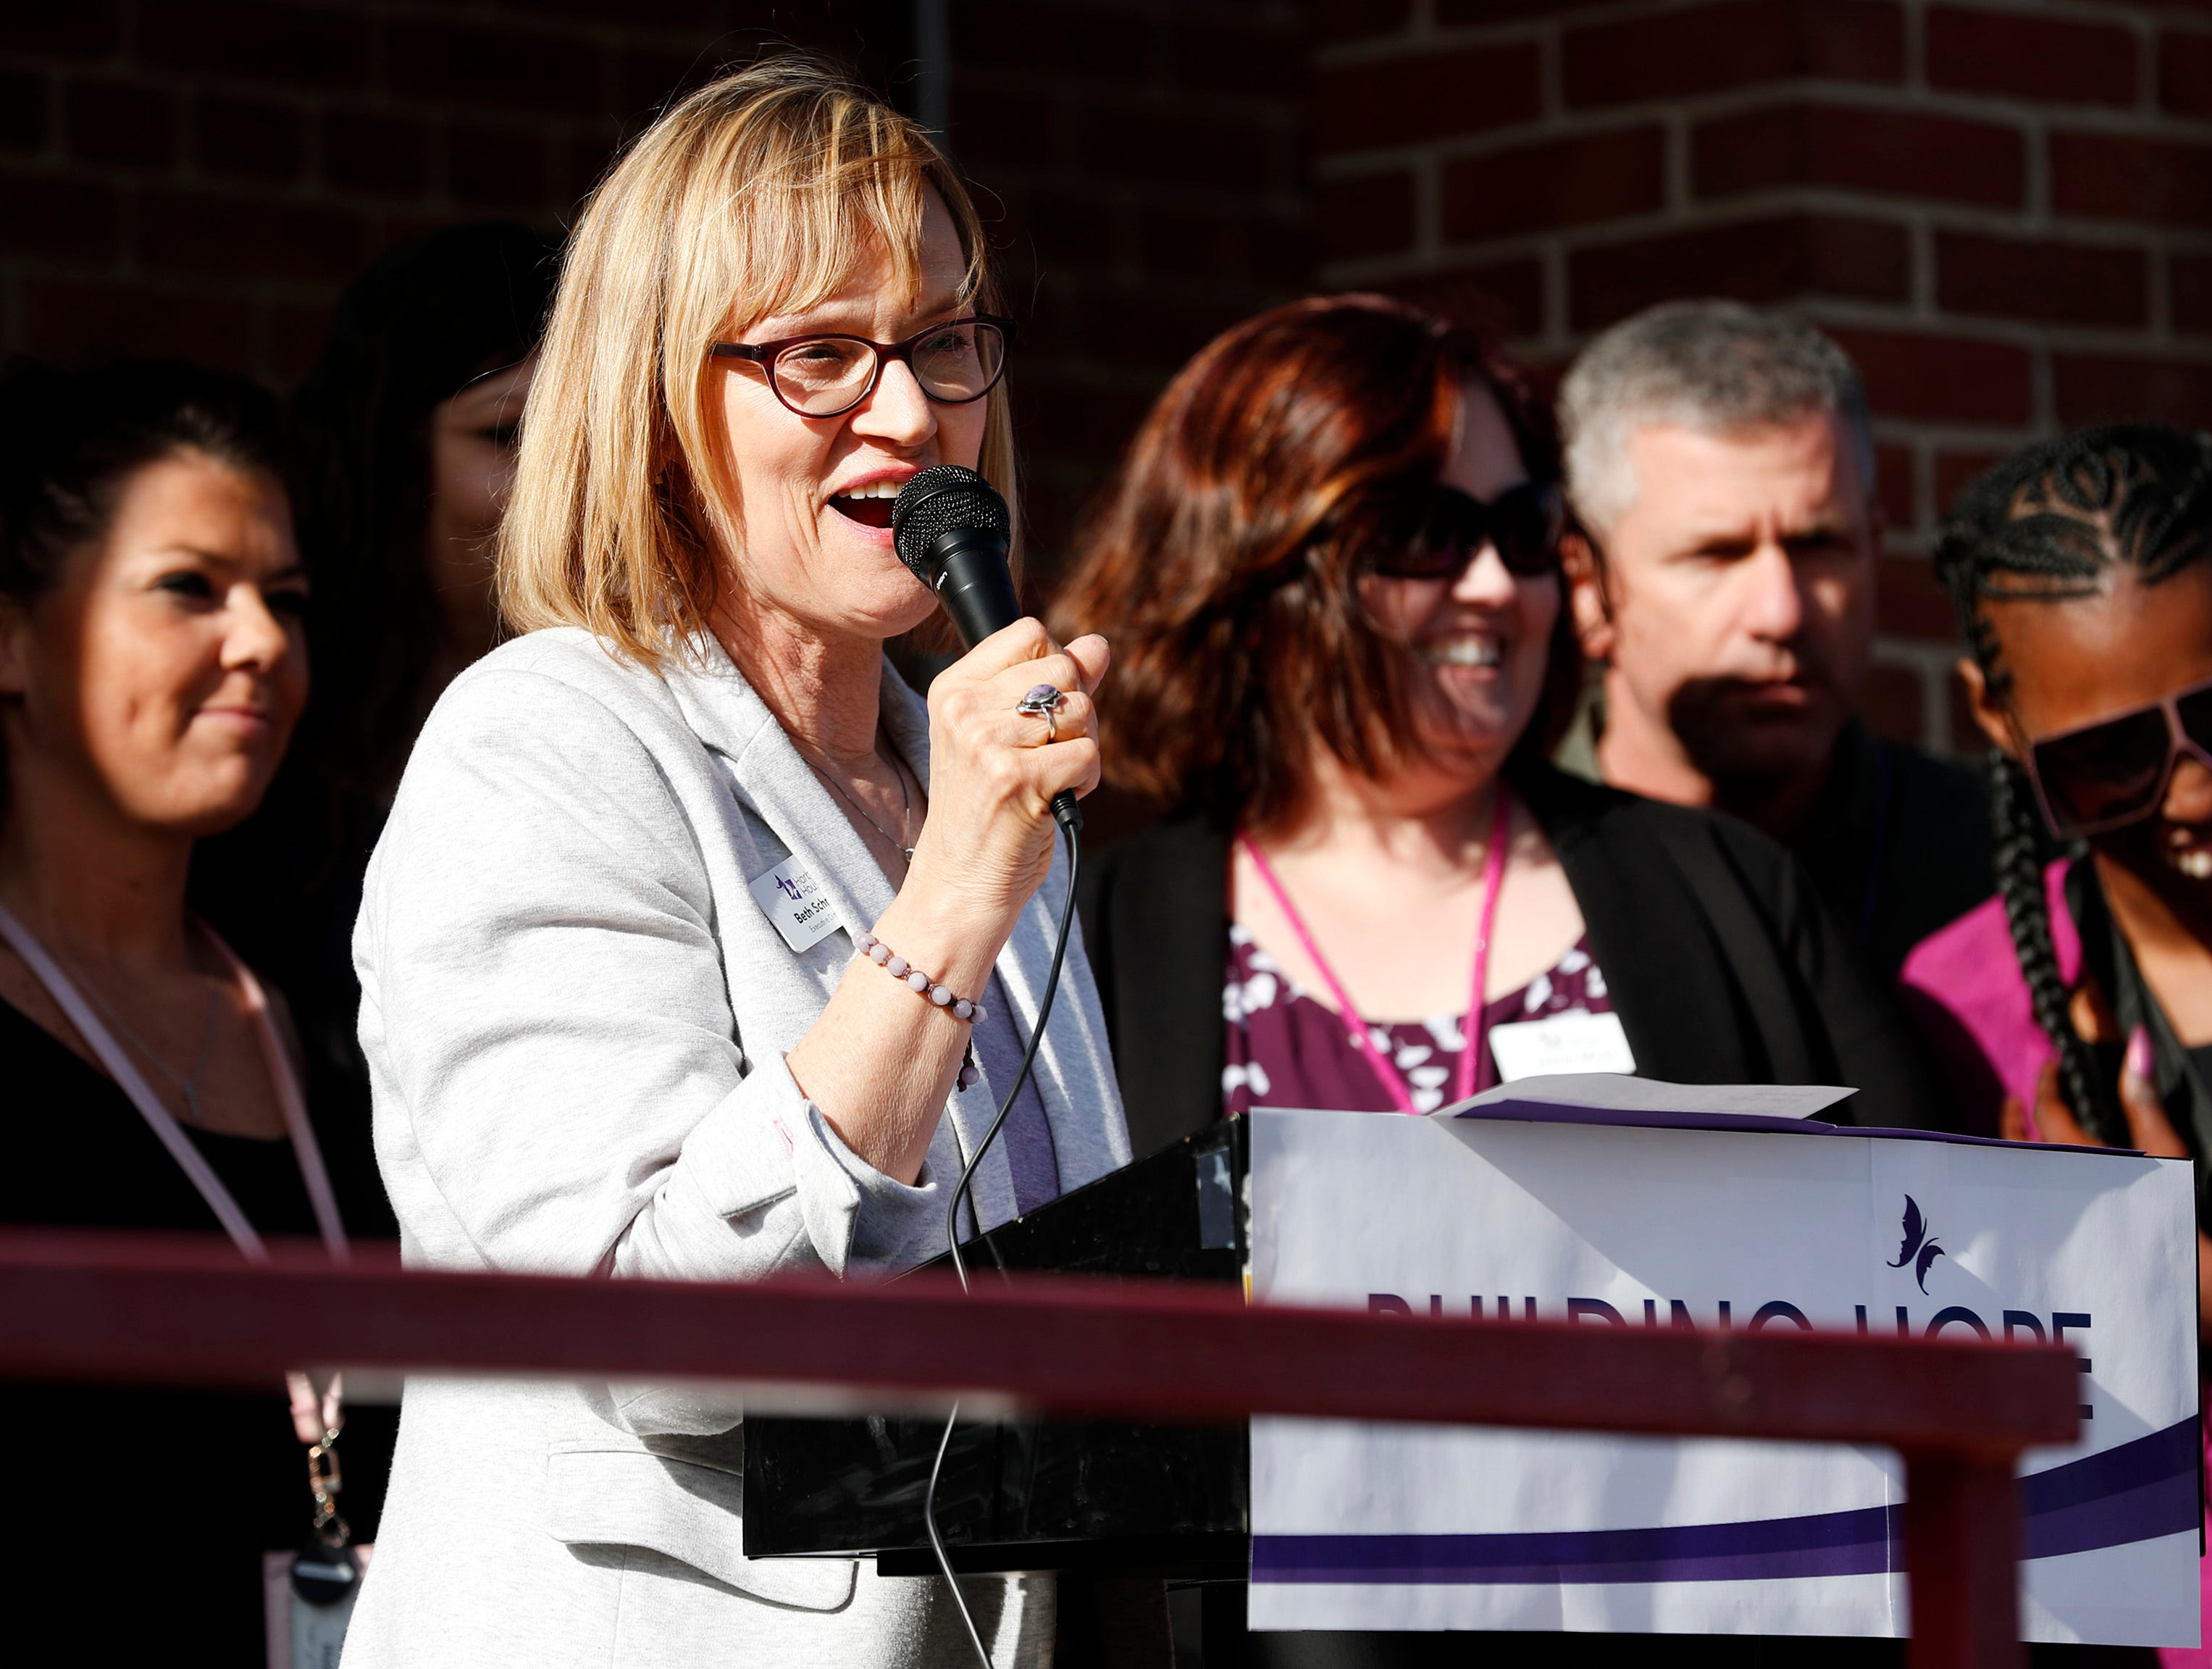 Beth Schnorr, executive director of Harbor House Domestic Abuse Programs, speaks to a crowd gathered at the ribbon cutting and open house for Harbor House's updated facilities Tuesday, May 7, 2019, in Oshkosh, Wis. 